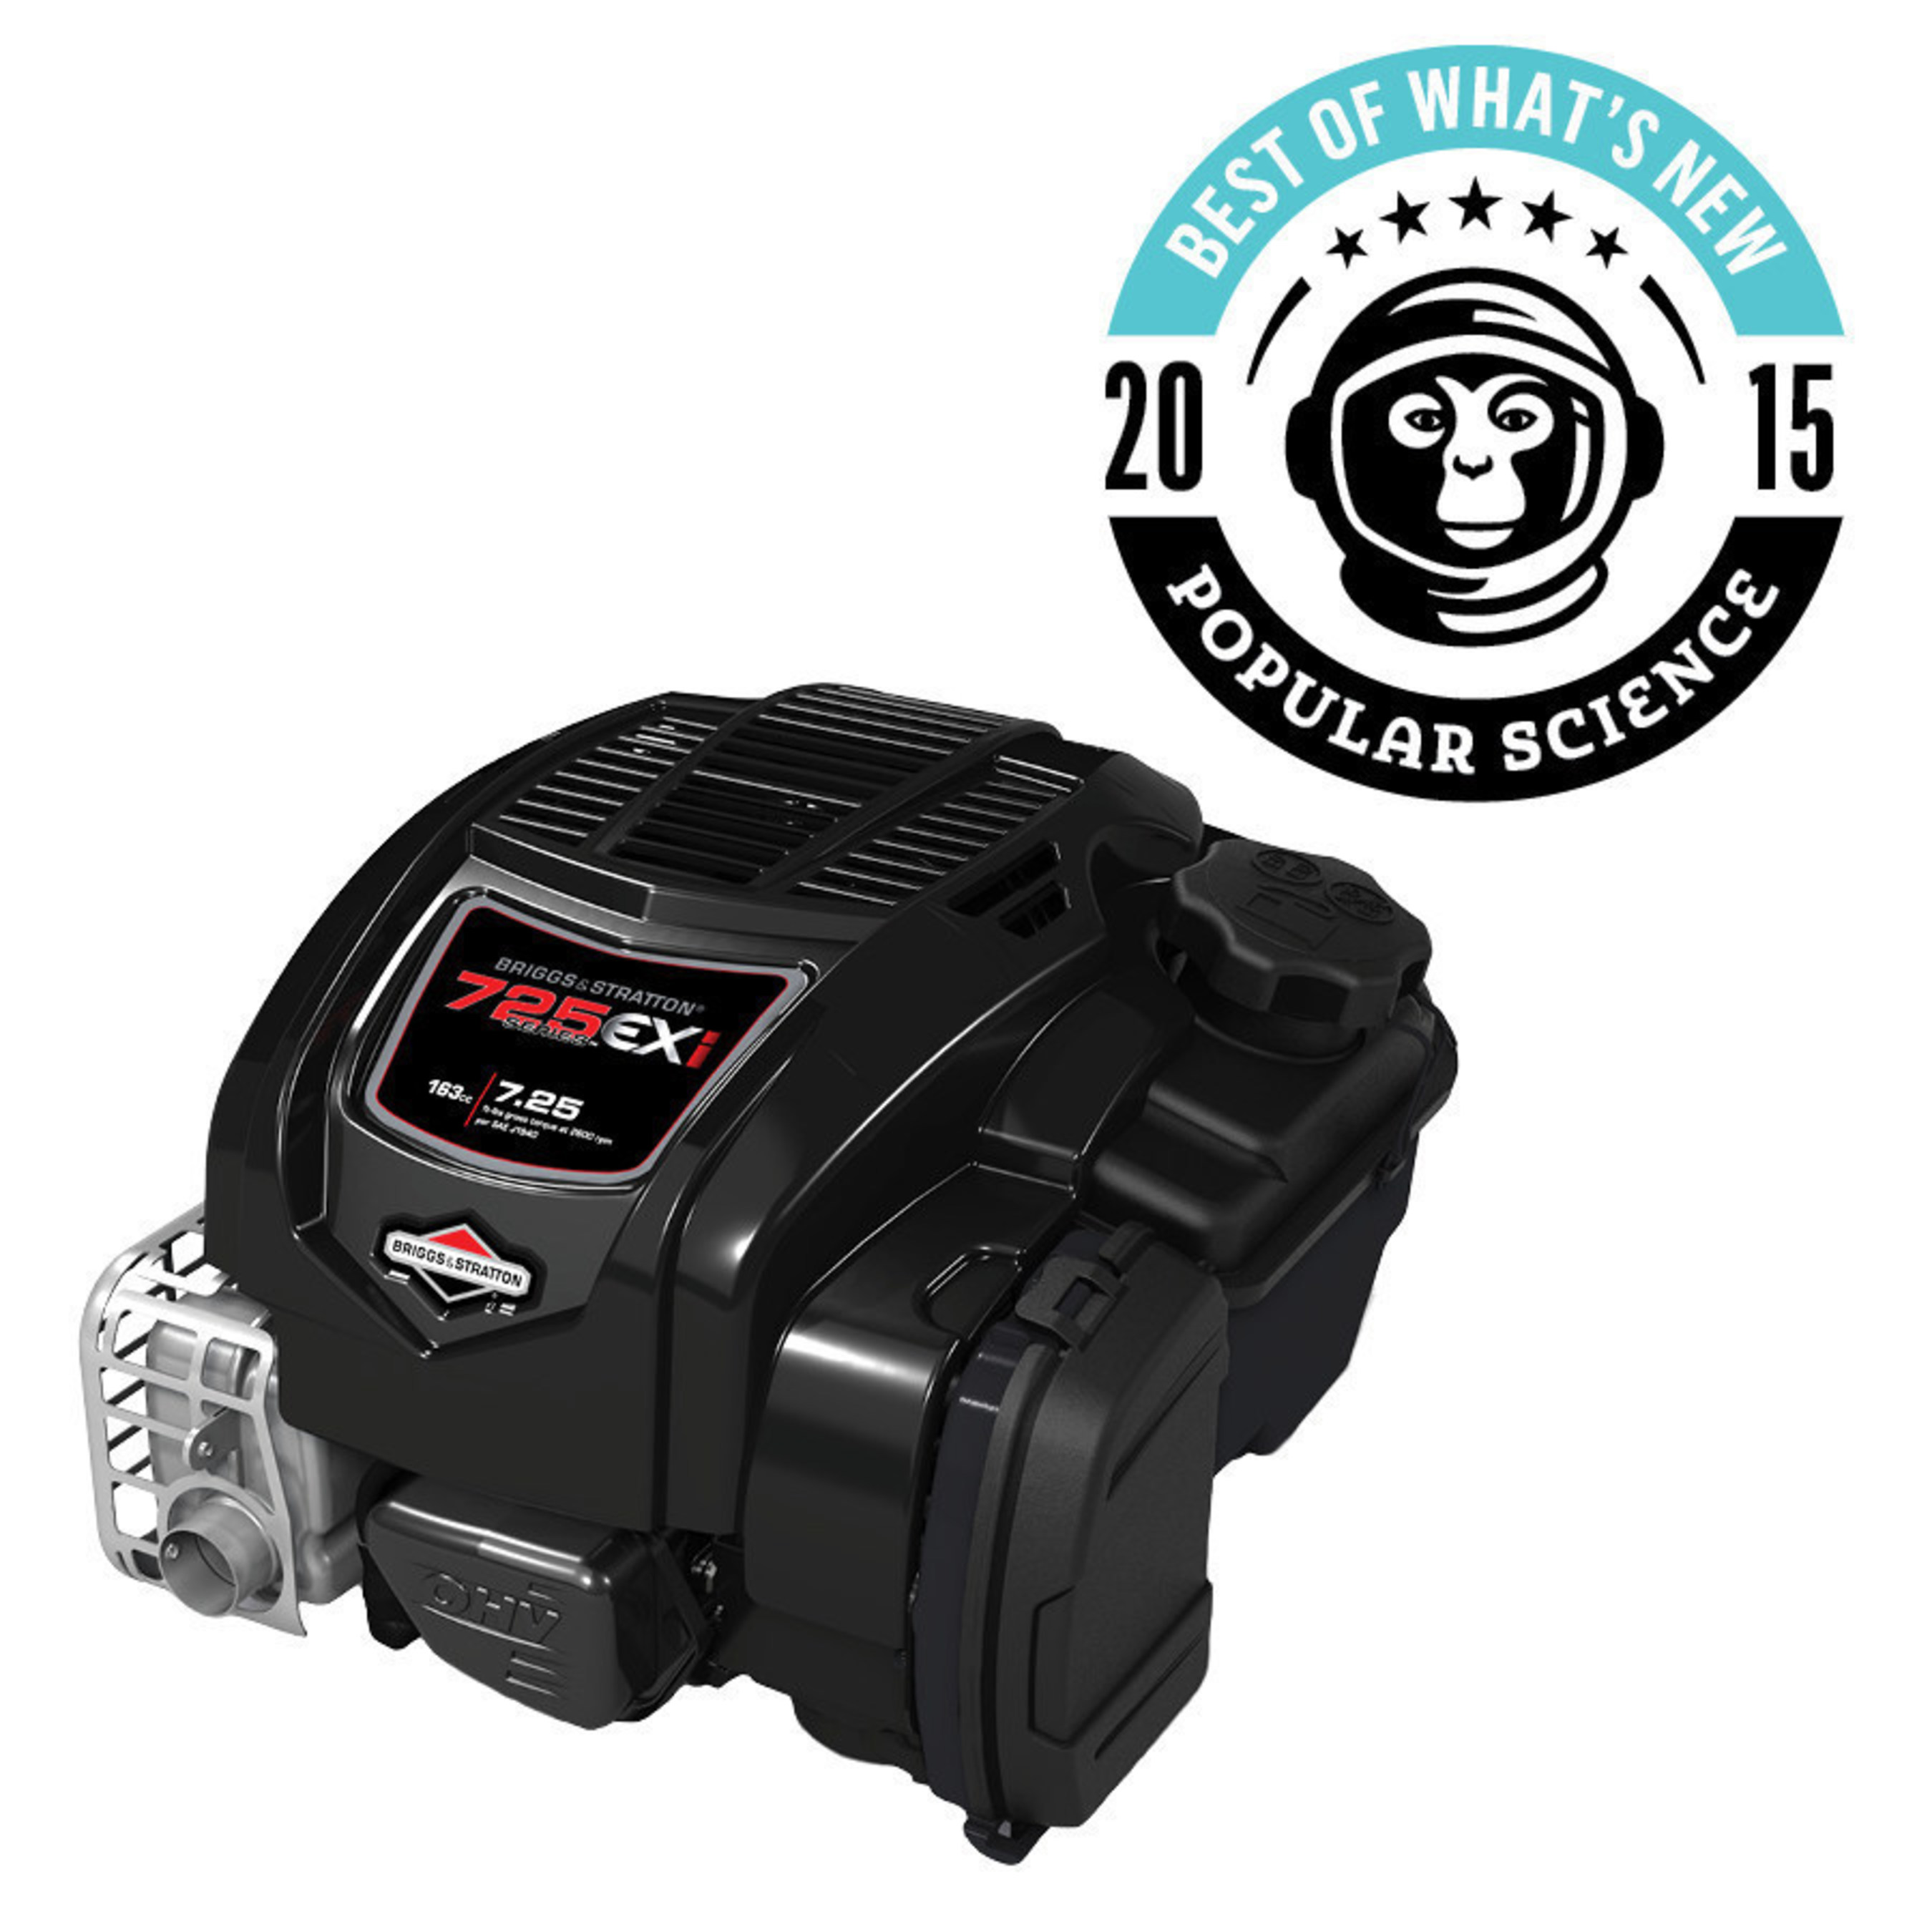 Briggs Stratton Corporation S Exi Series Engine Was Named A Home Category Winner In Por Science